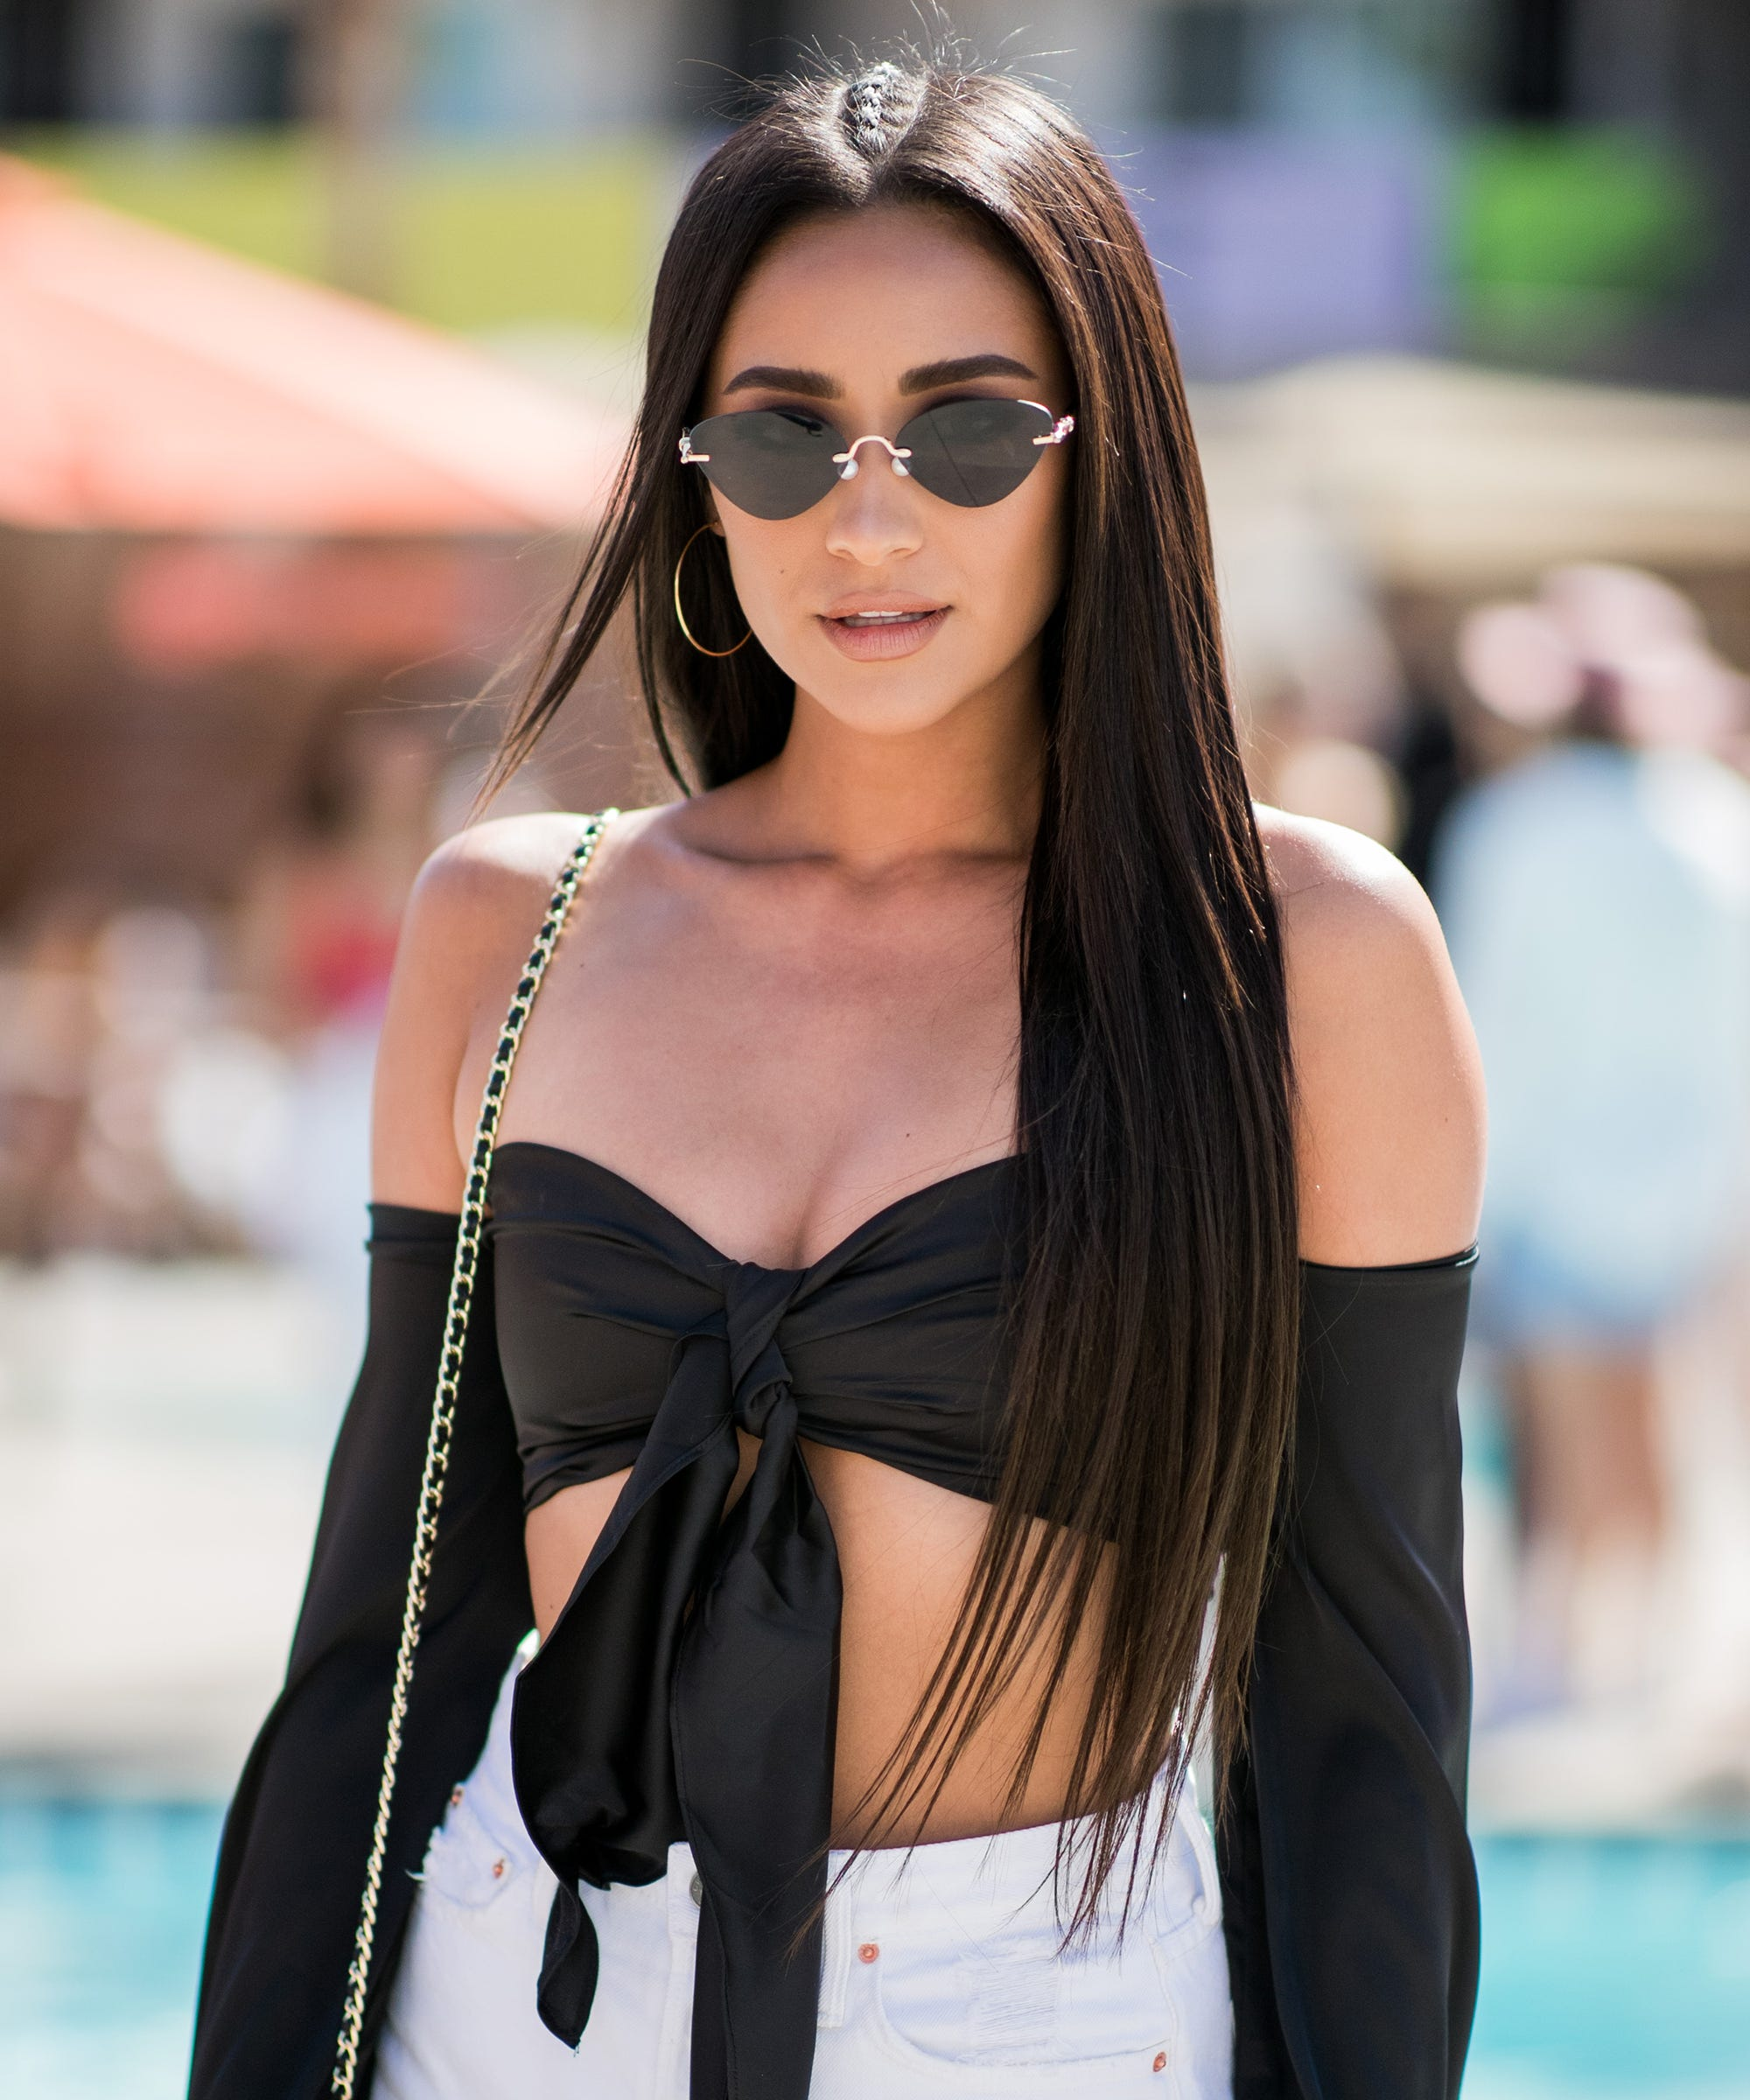 la celebrity long hair trend extension style for summer